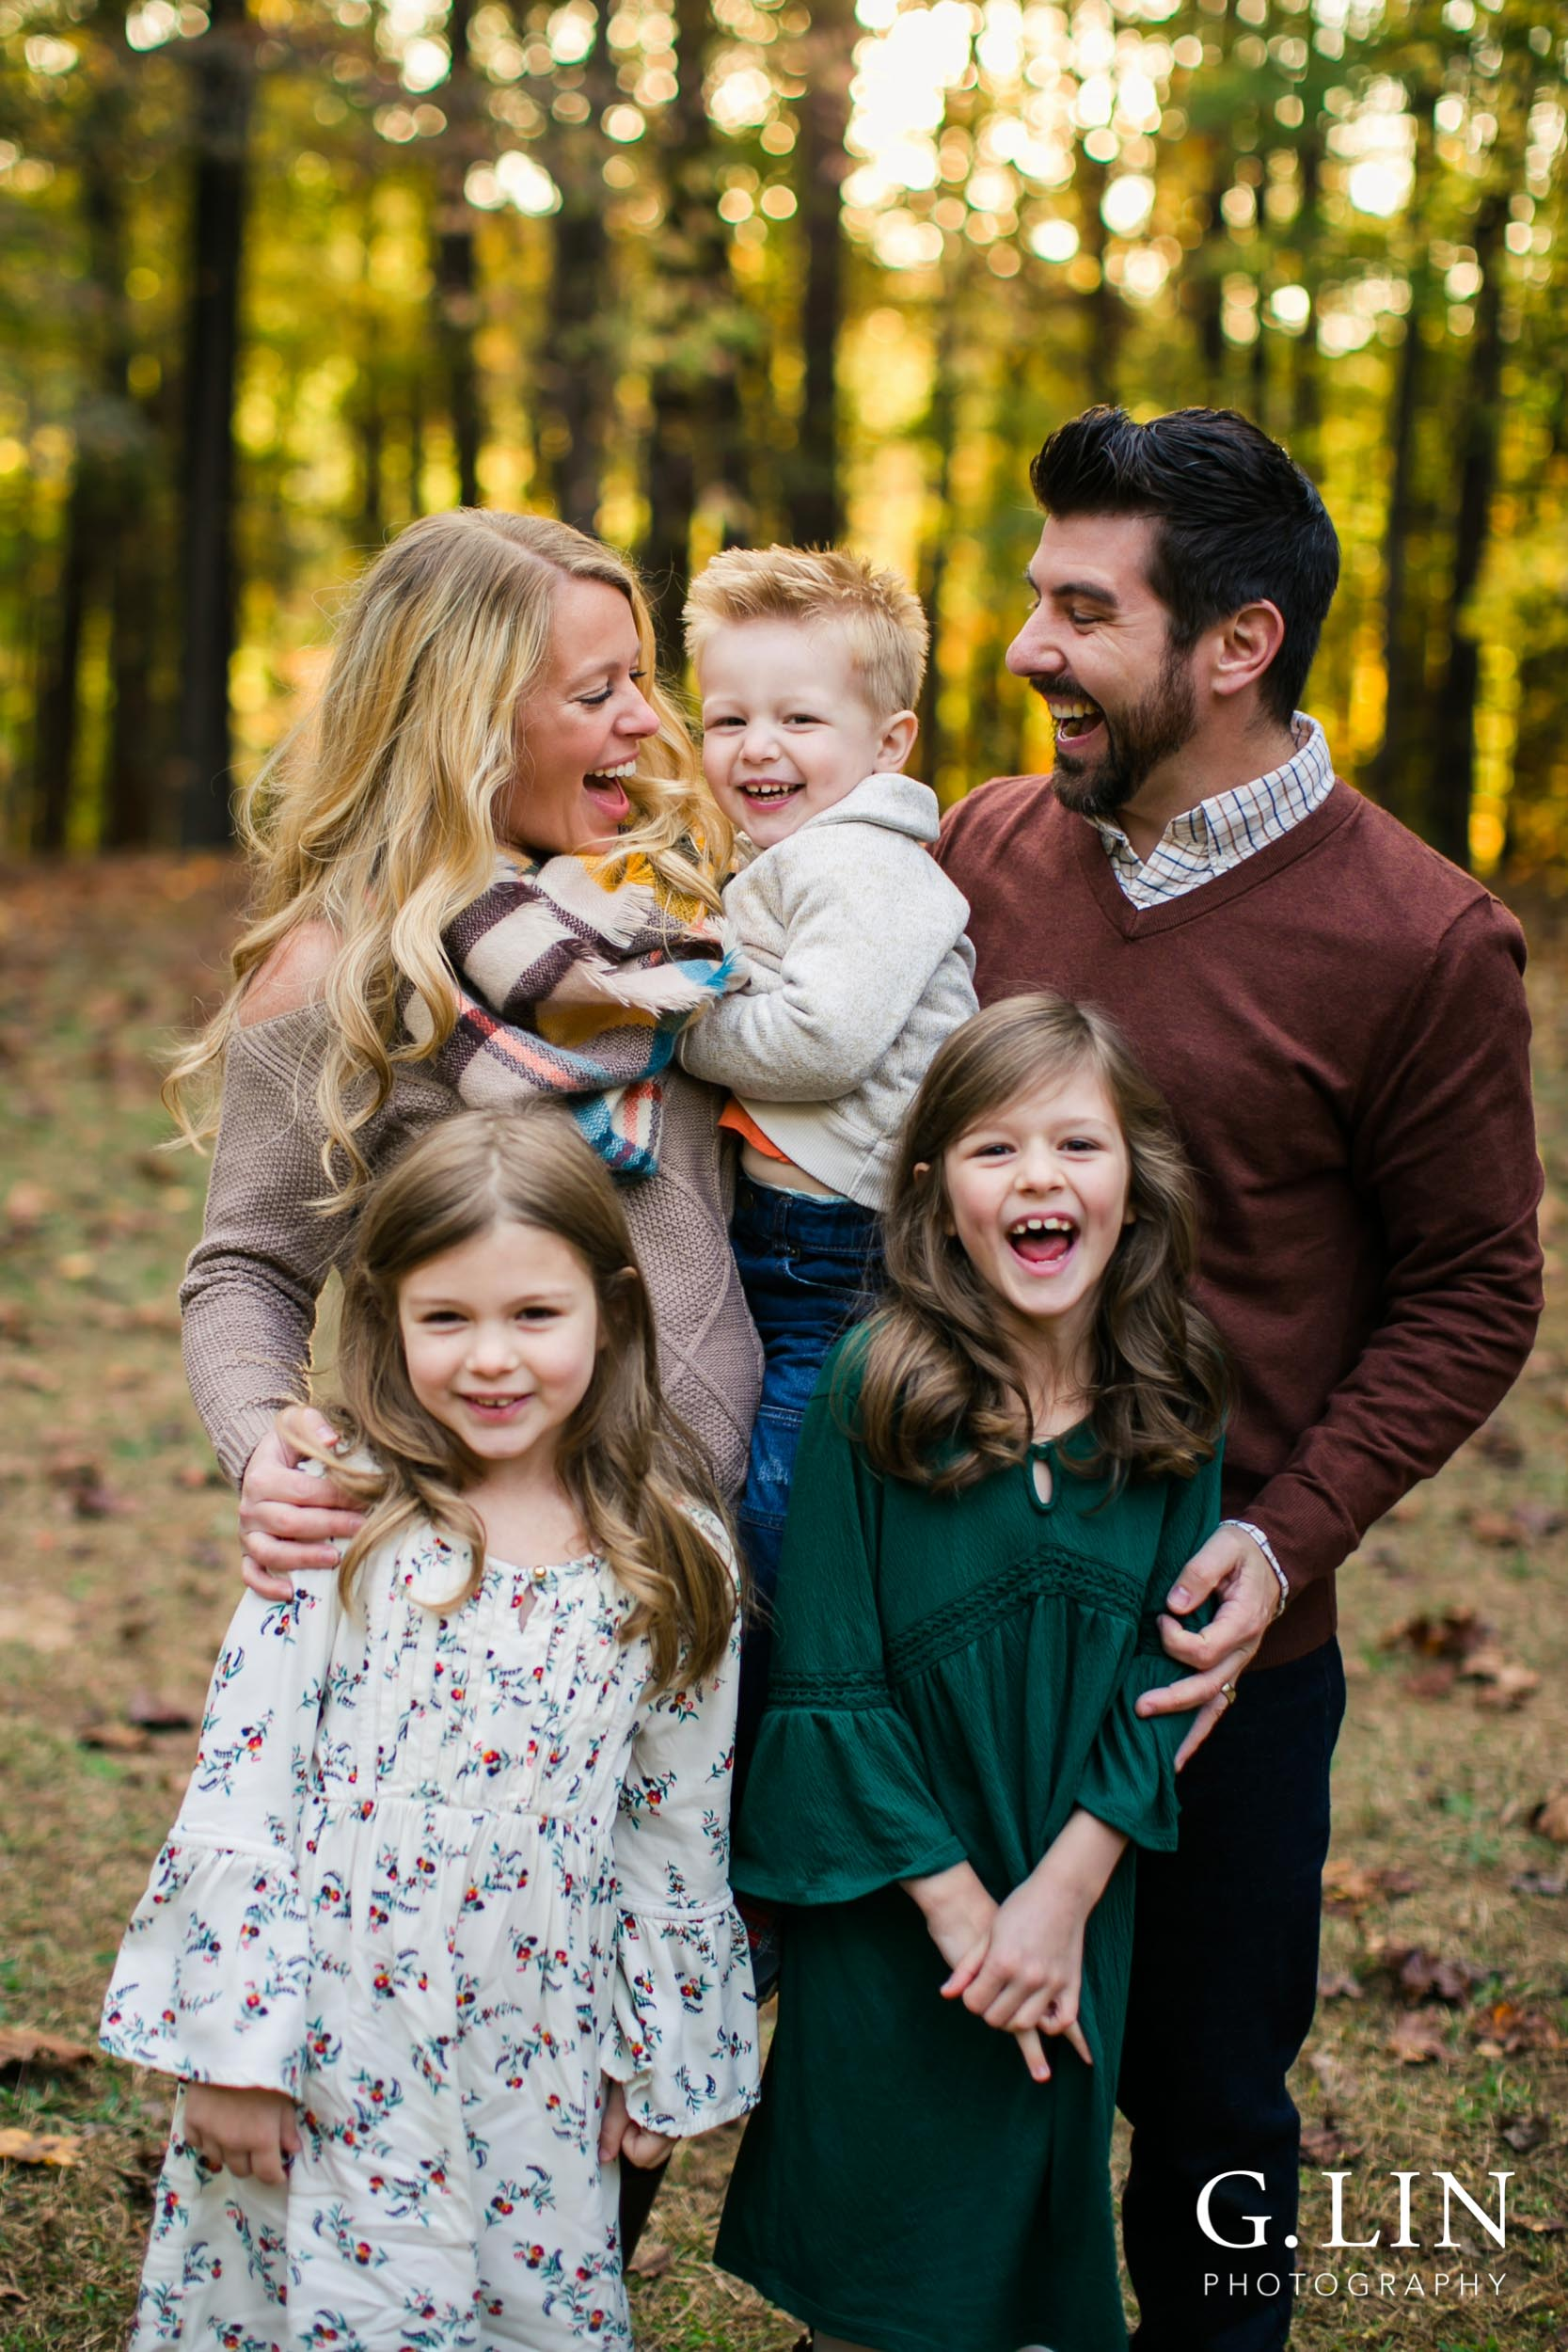 Raleigh Family Photographer | G. Lin Photography | Family together smiling and laughing